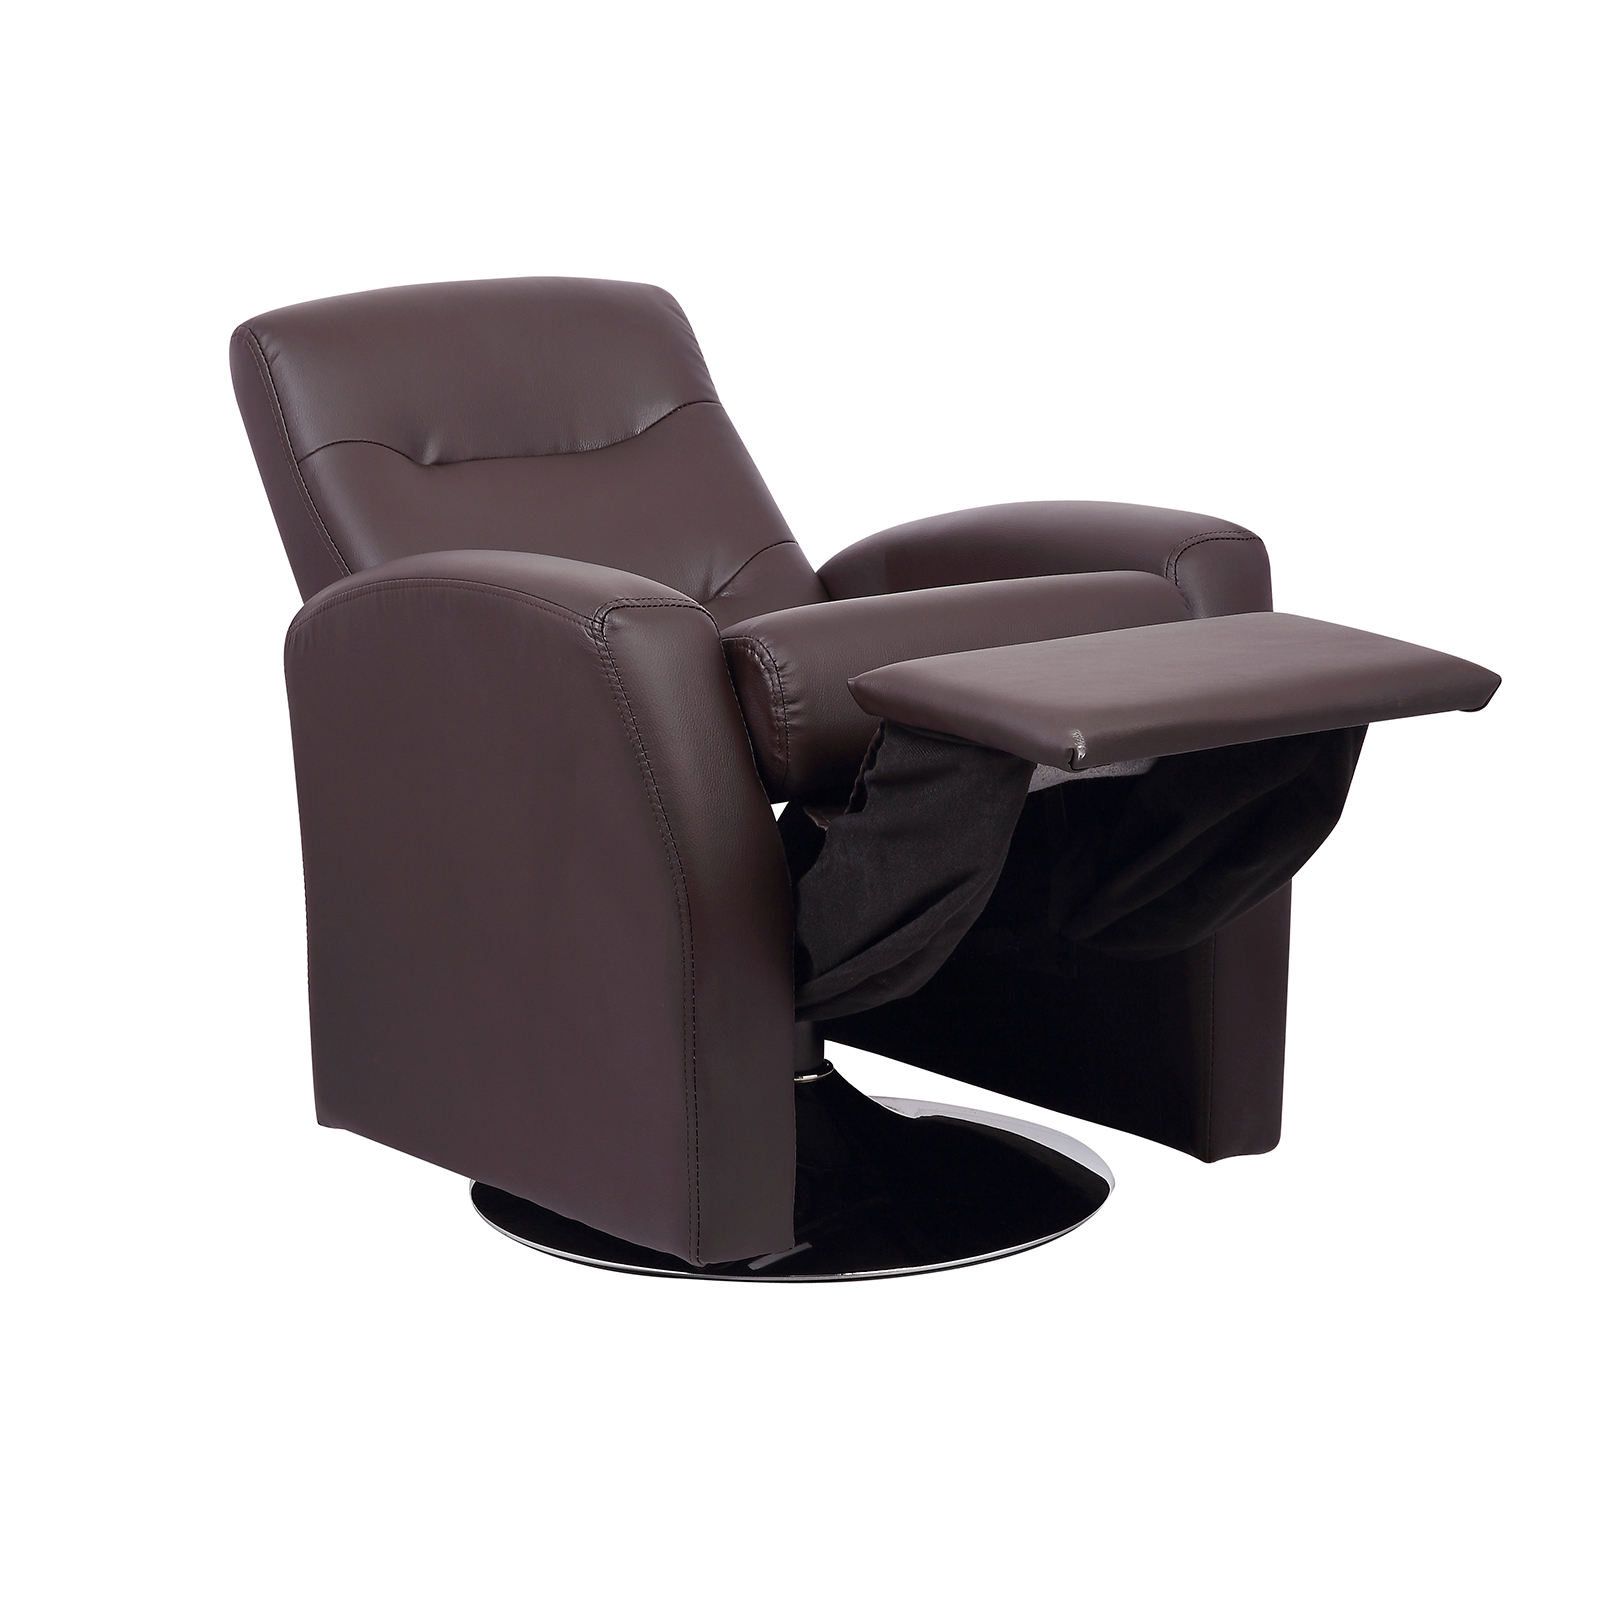 Childrens luxurious recliner chair with swivel action seat for Kids chair leather